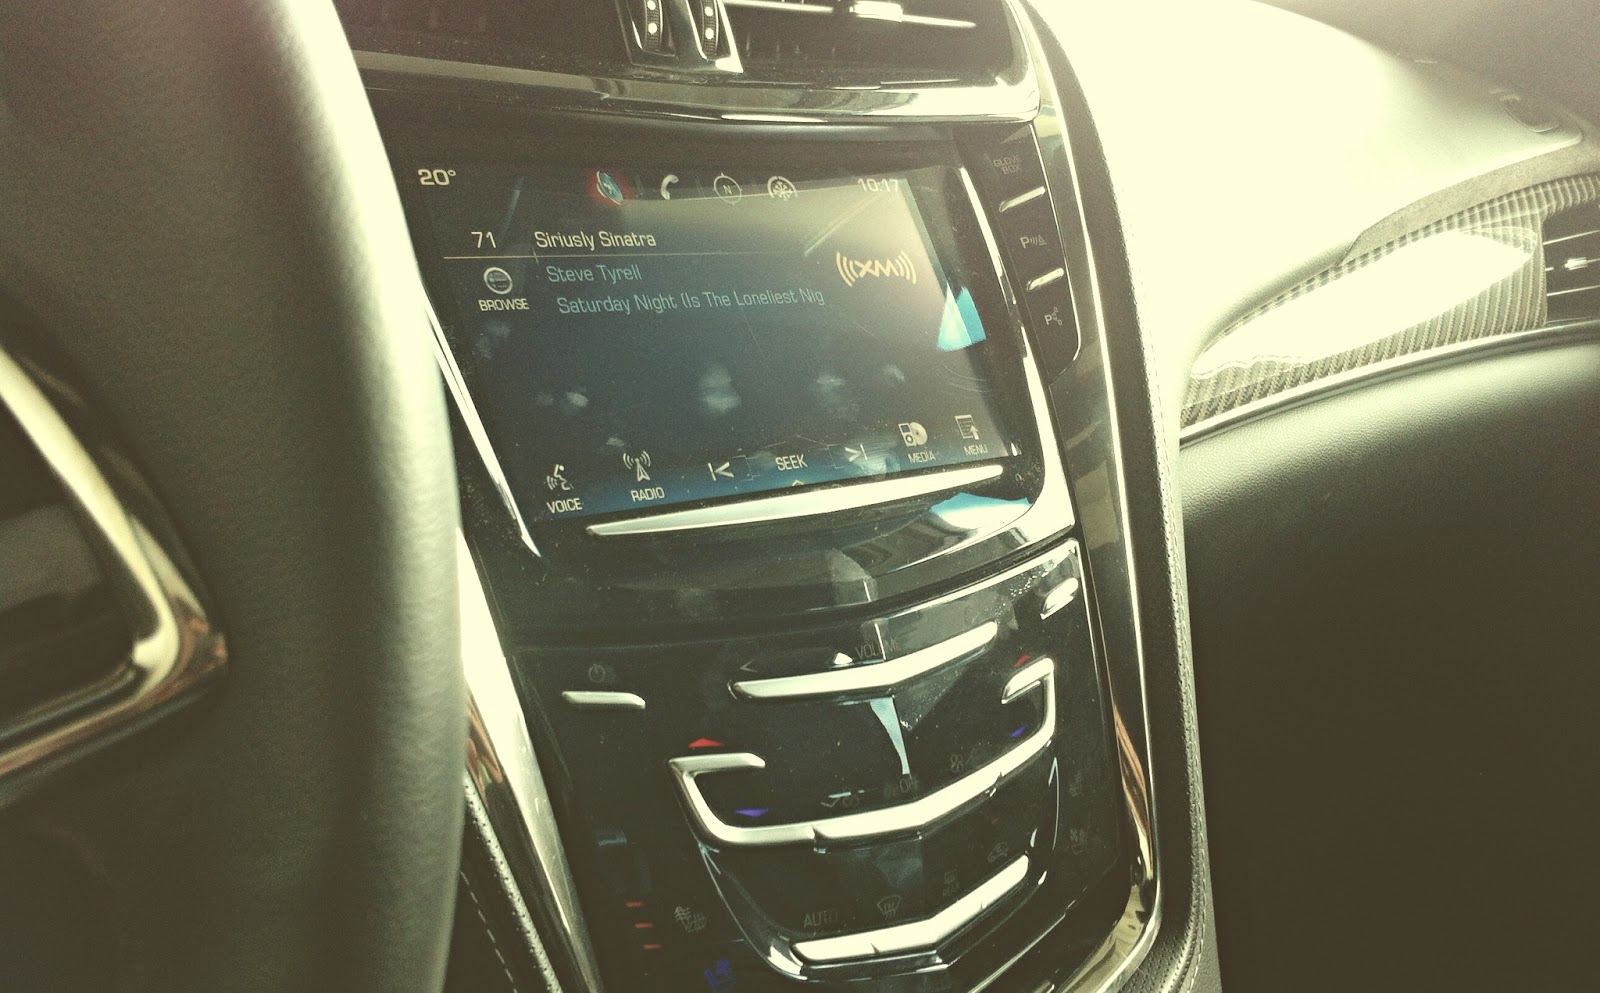 2014 Cadillac CTS control panel